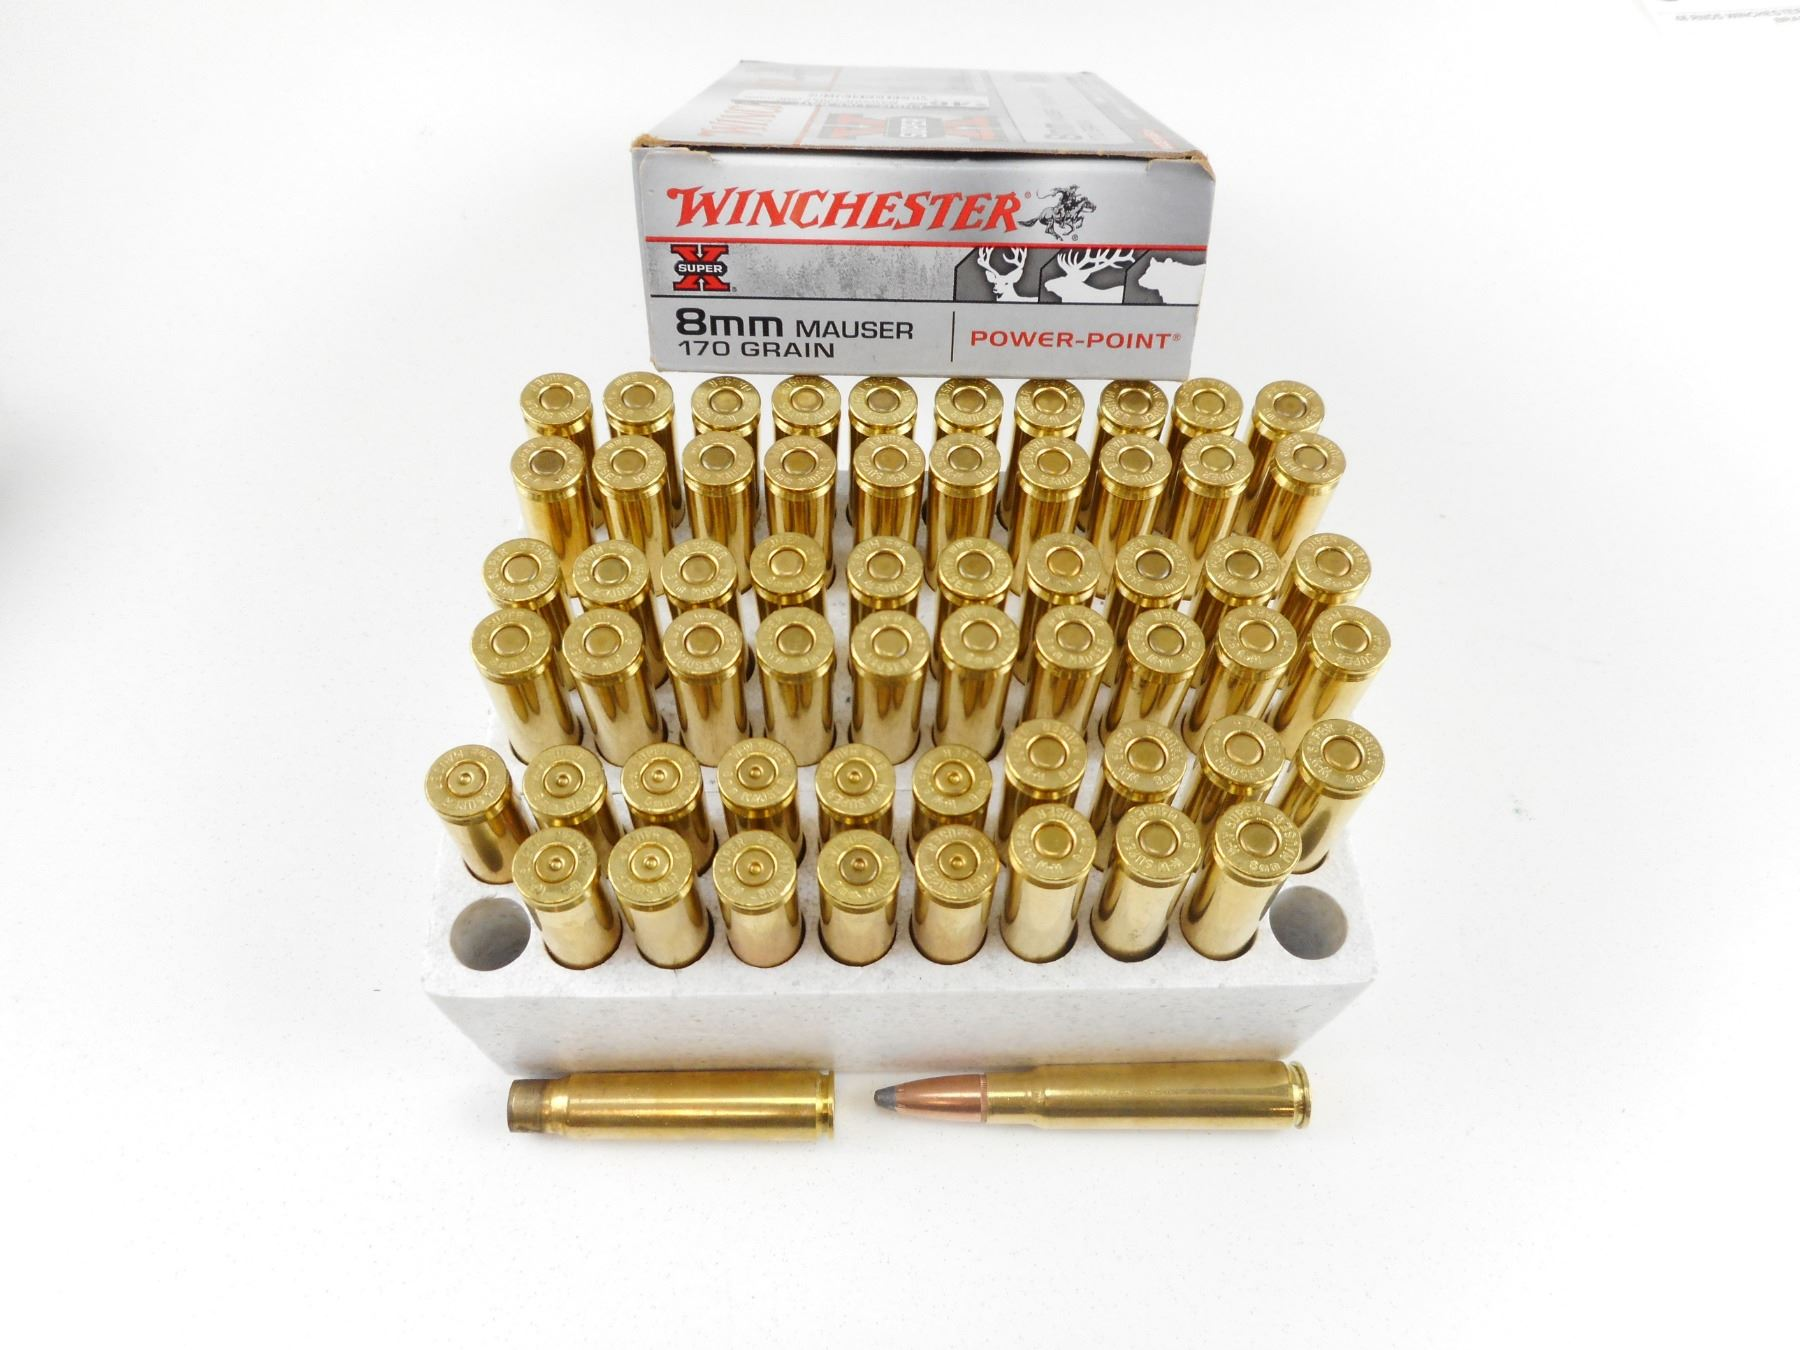 WINCHESTER 8MM MAUSER AMMO, BRASS CASES